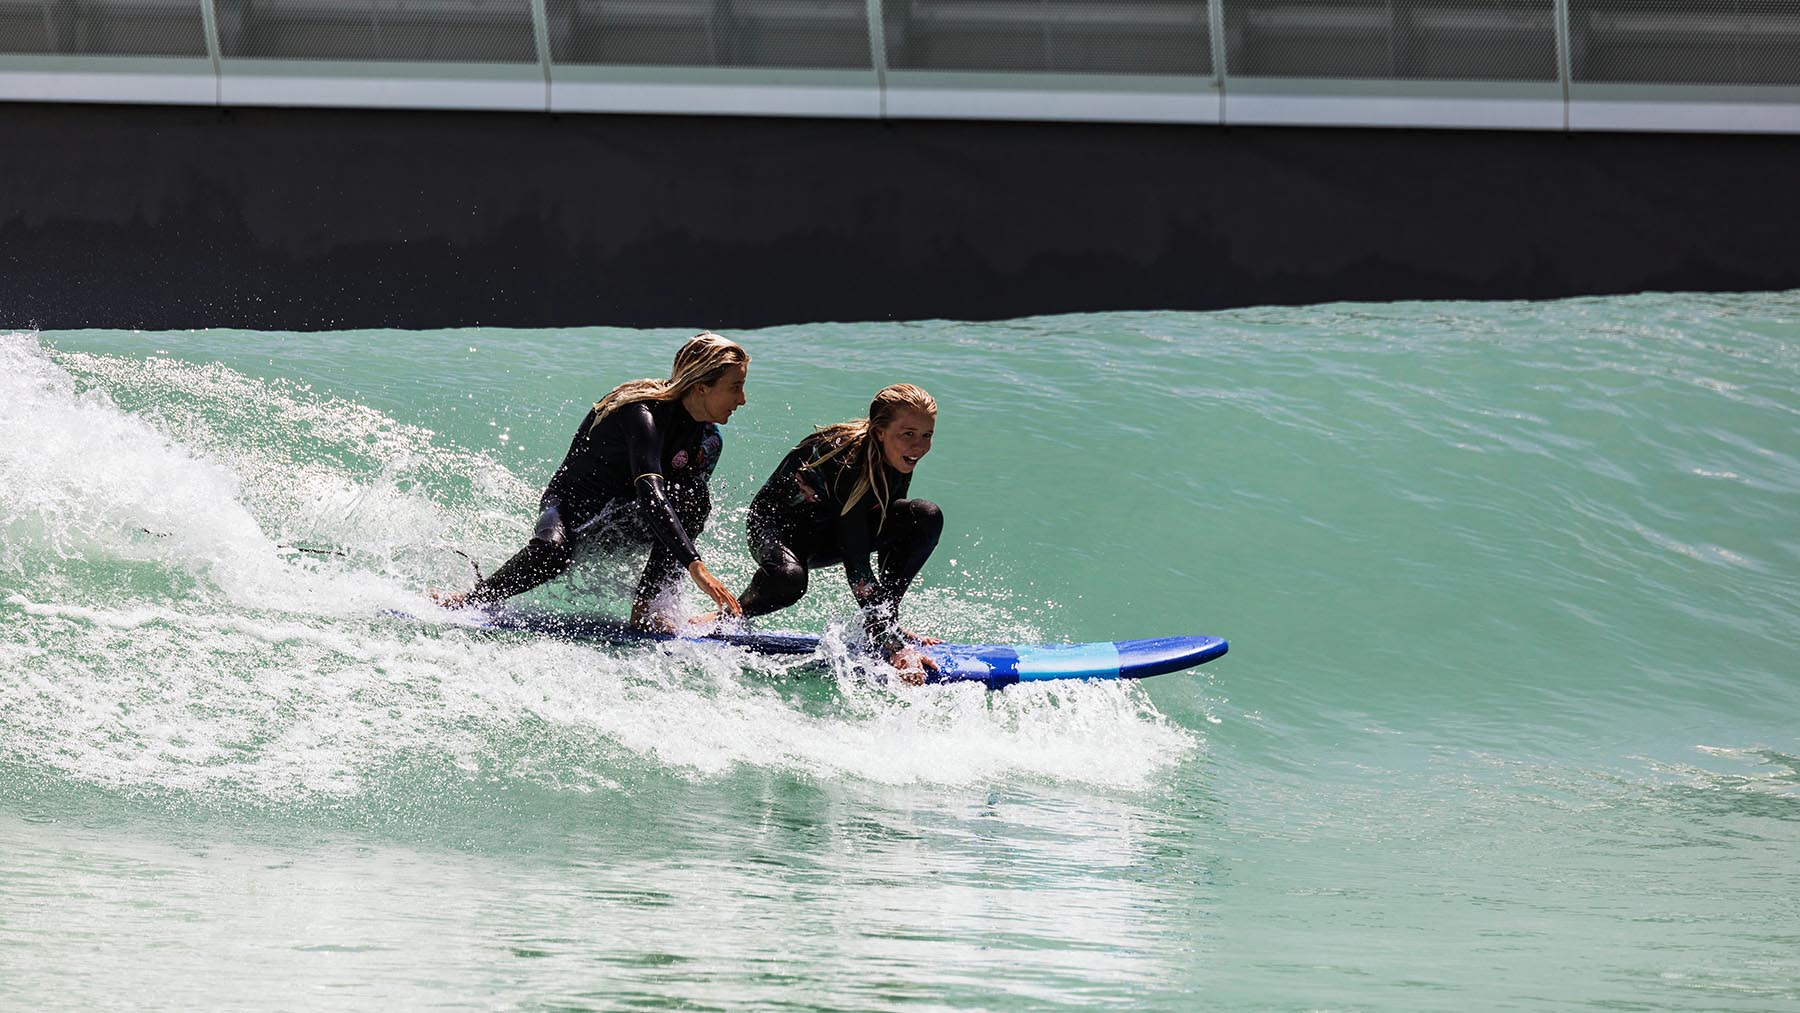 tandem surfing at urbnsurf